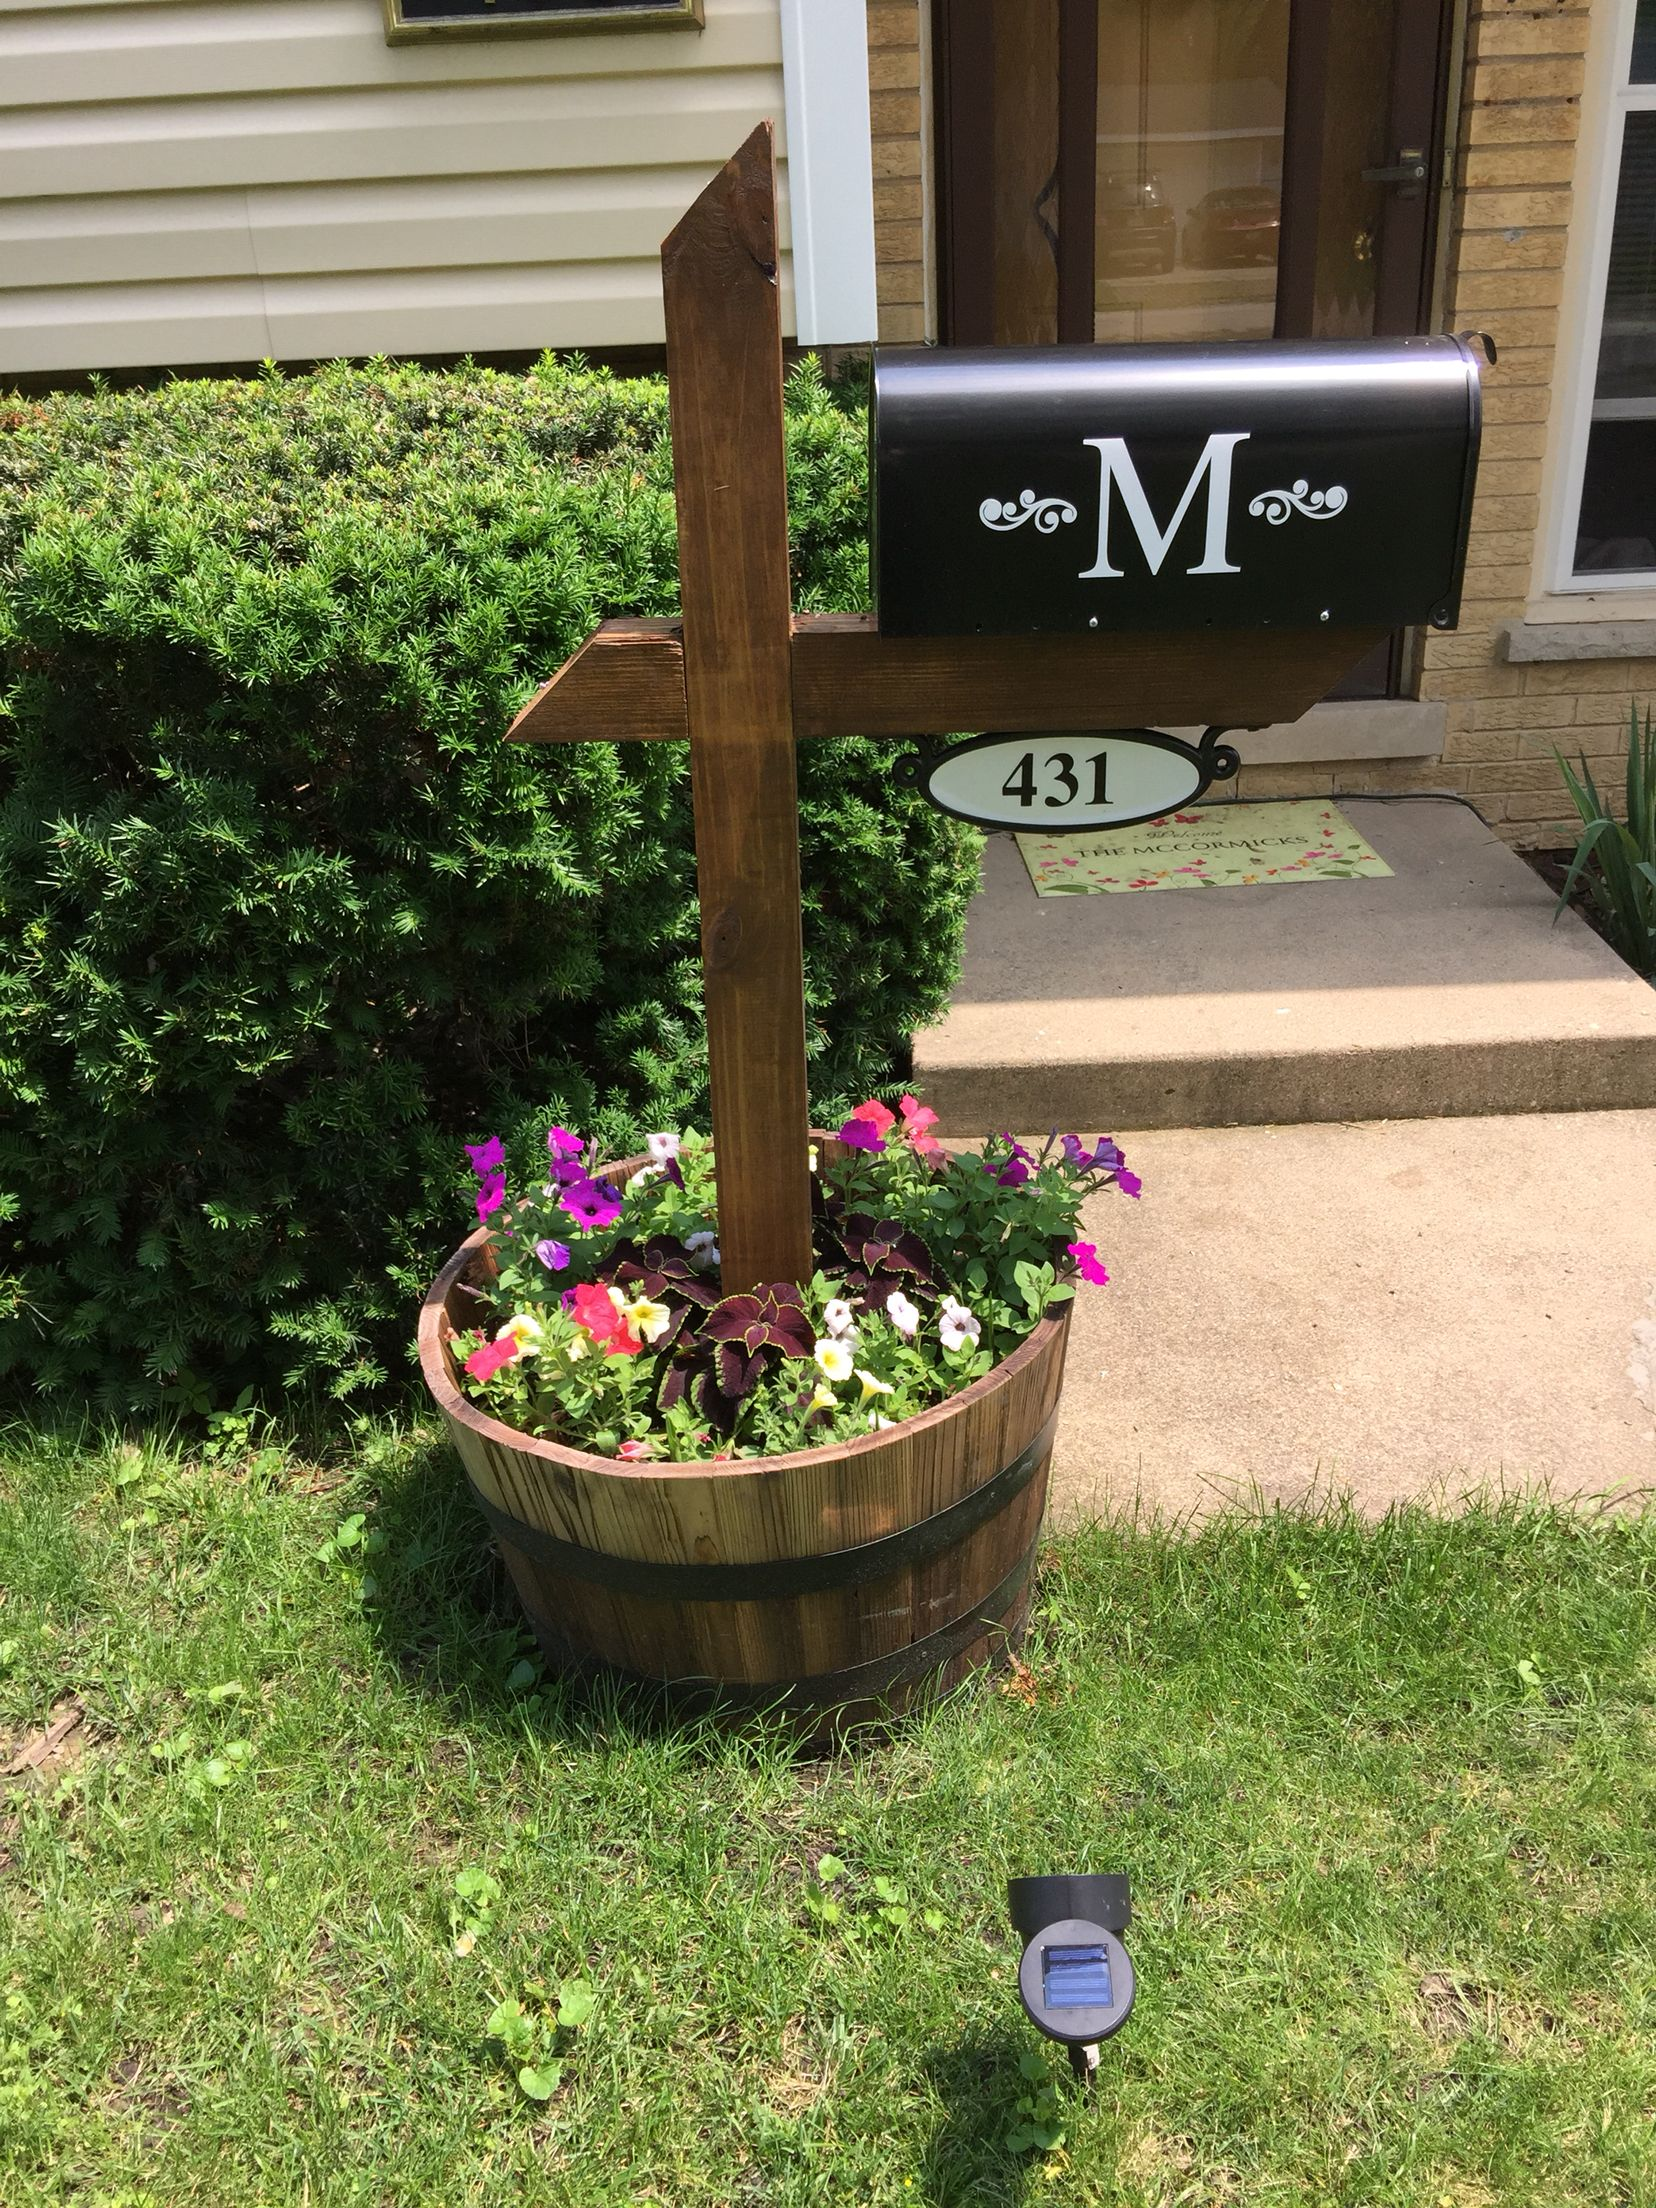 No Cement Needed Make A Hole Through The Barrel For The Post To Go Through M Sticker From Etsy Address Number Mailbox Garden Outside House Decor Diy Mailbox